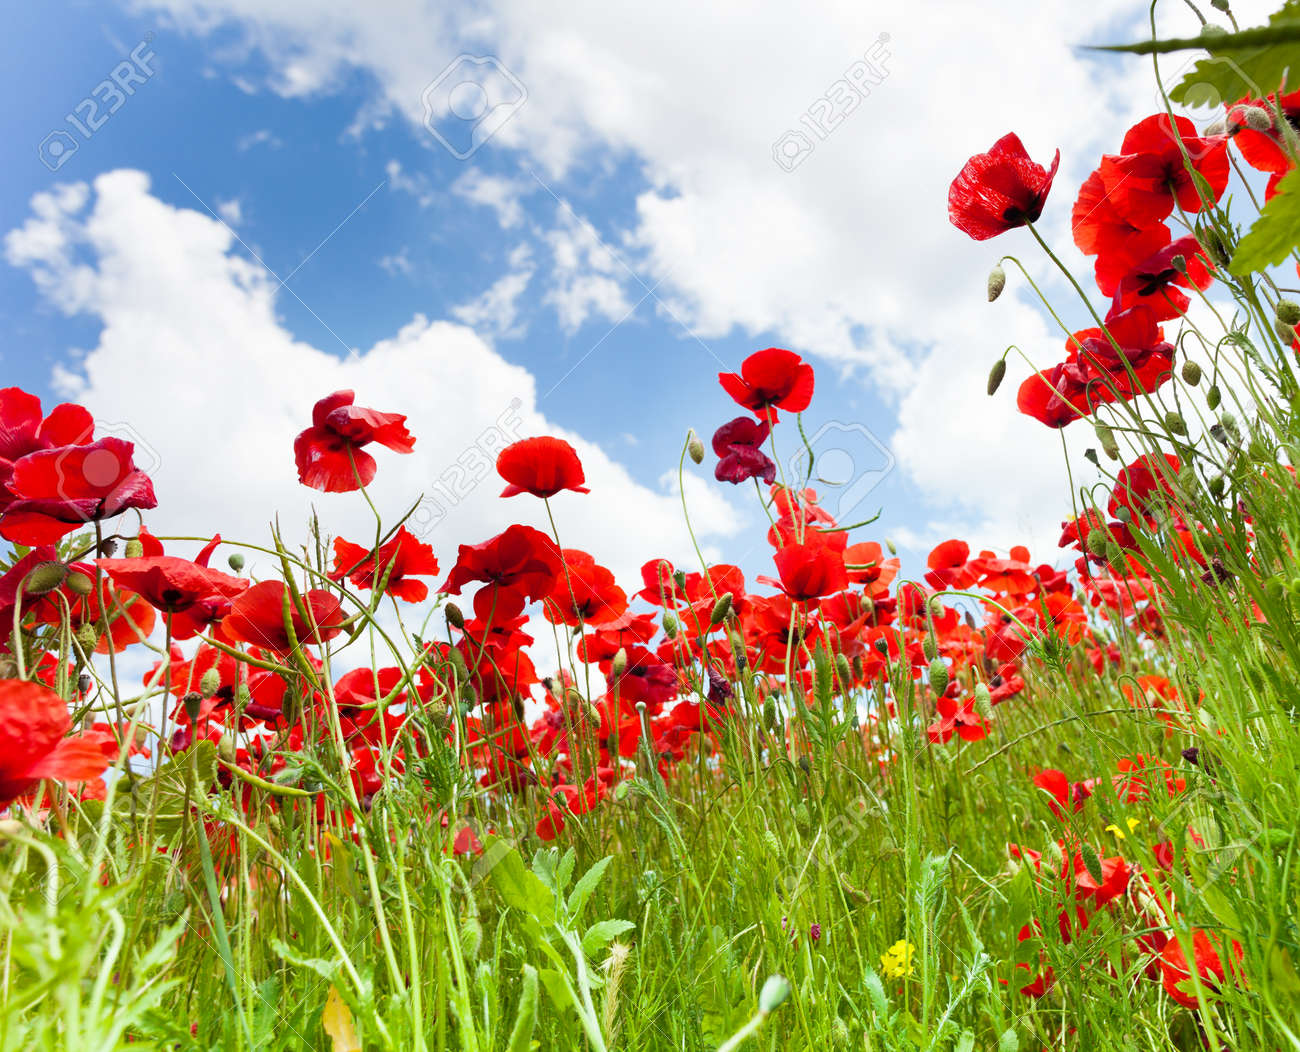 Poppies Flowers In The Spring Field Low Angle Shoot With Clouds